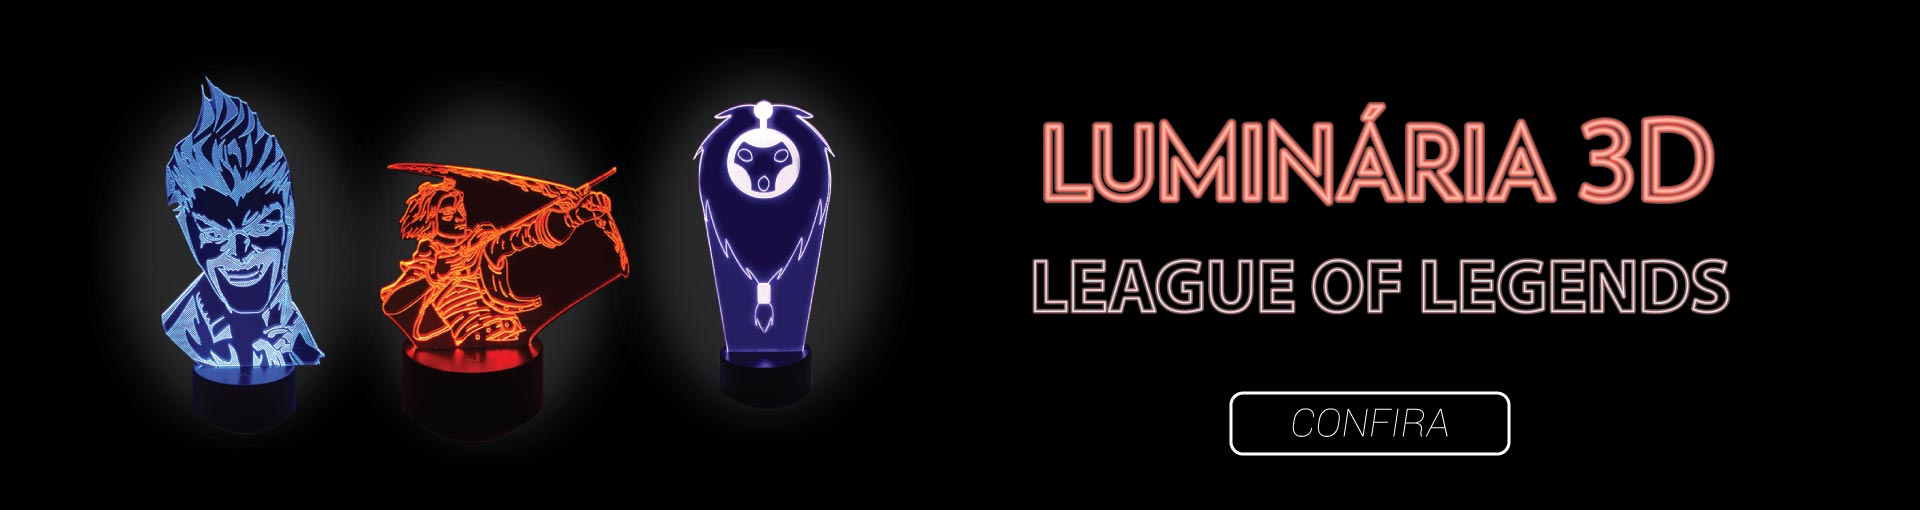 Luminária 3D League of Legends